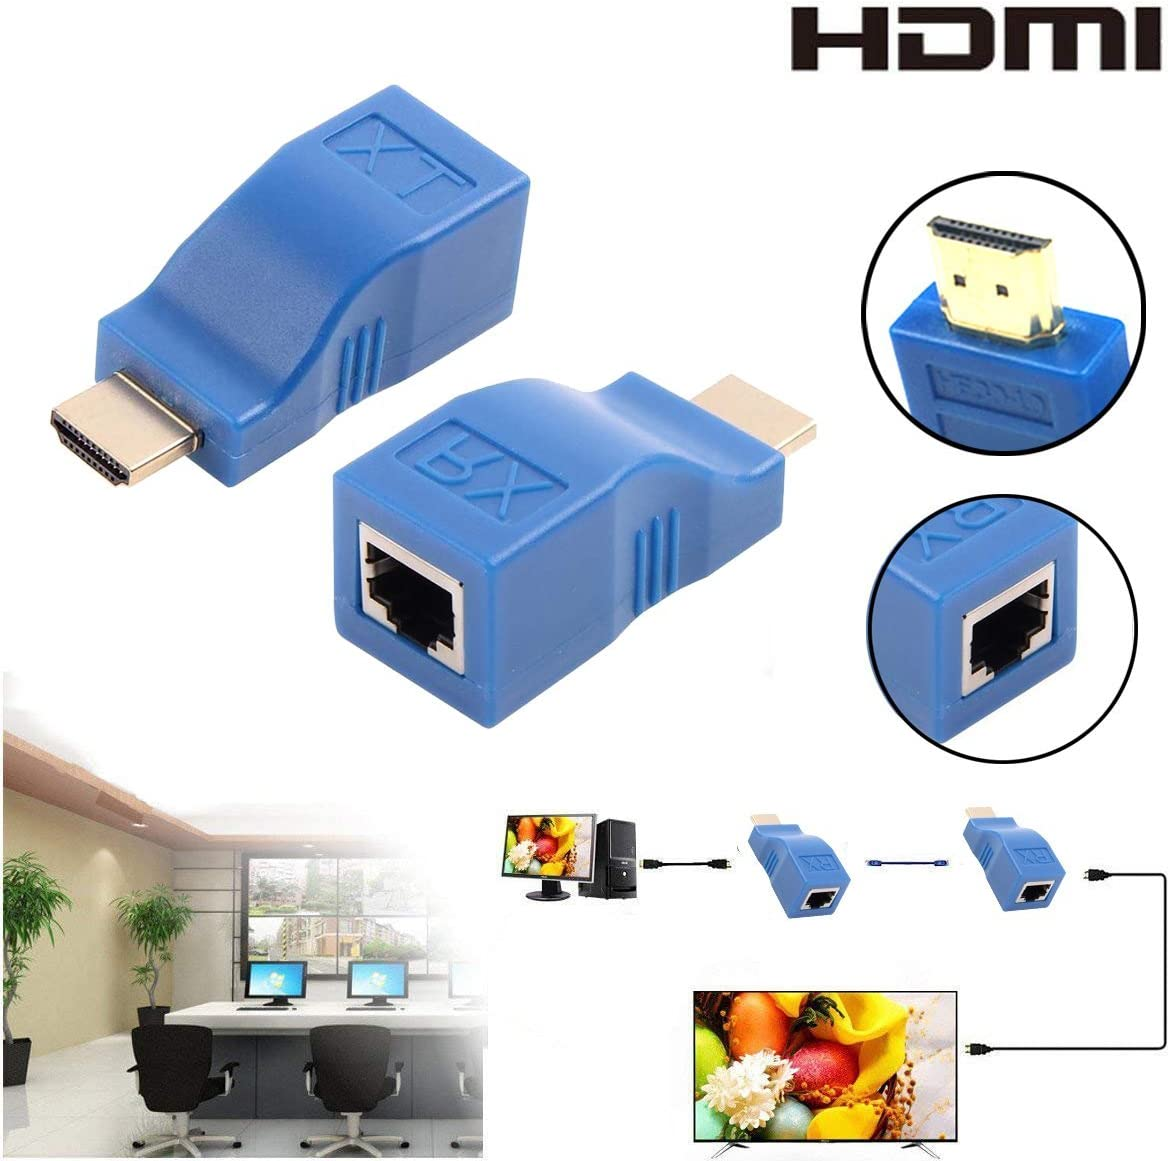 Splitter Repeater by Cat 5e Cat 6 1080P for HDTV HDPC PS4 STB 4K 2K Blue HDMI Extender,GEATSTAR 30M HDMI to RJ45 Network Cable Extender Converter Adapter